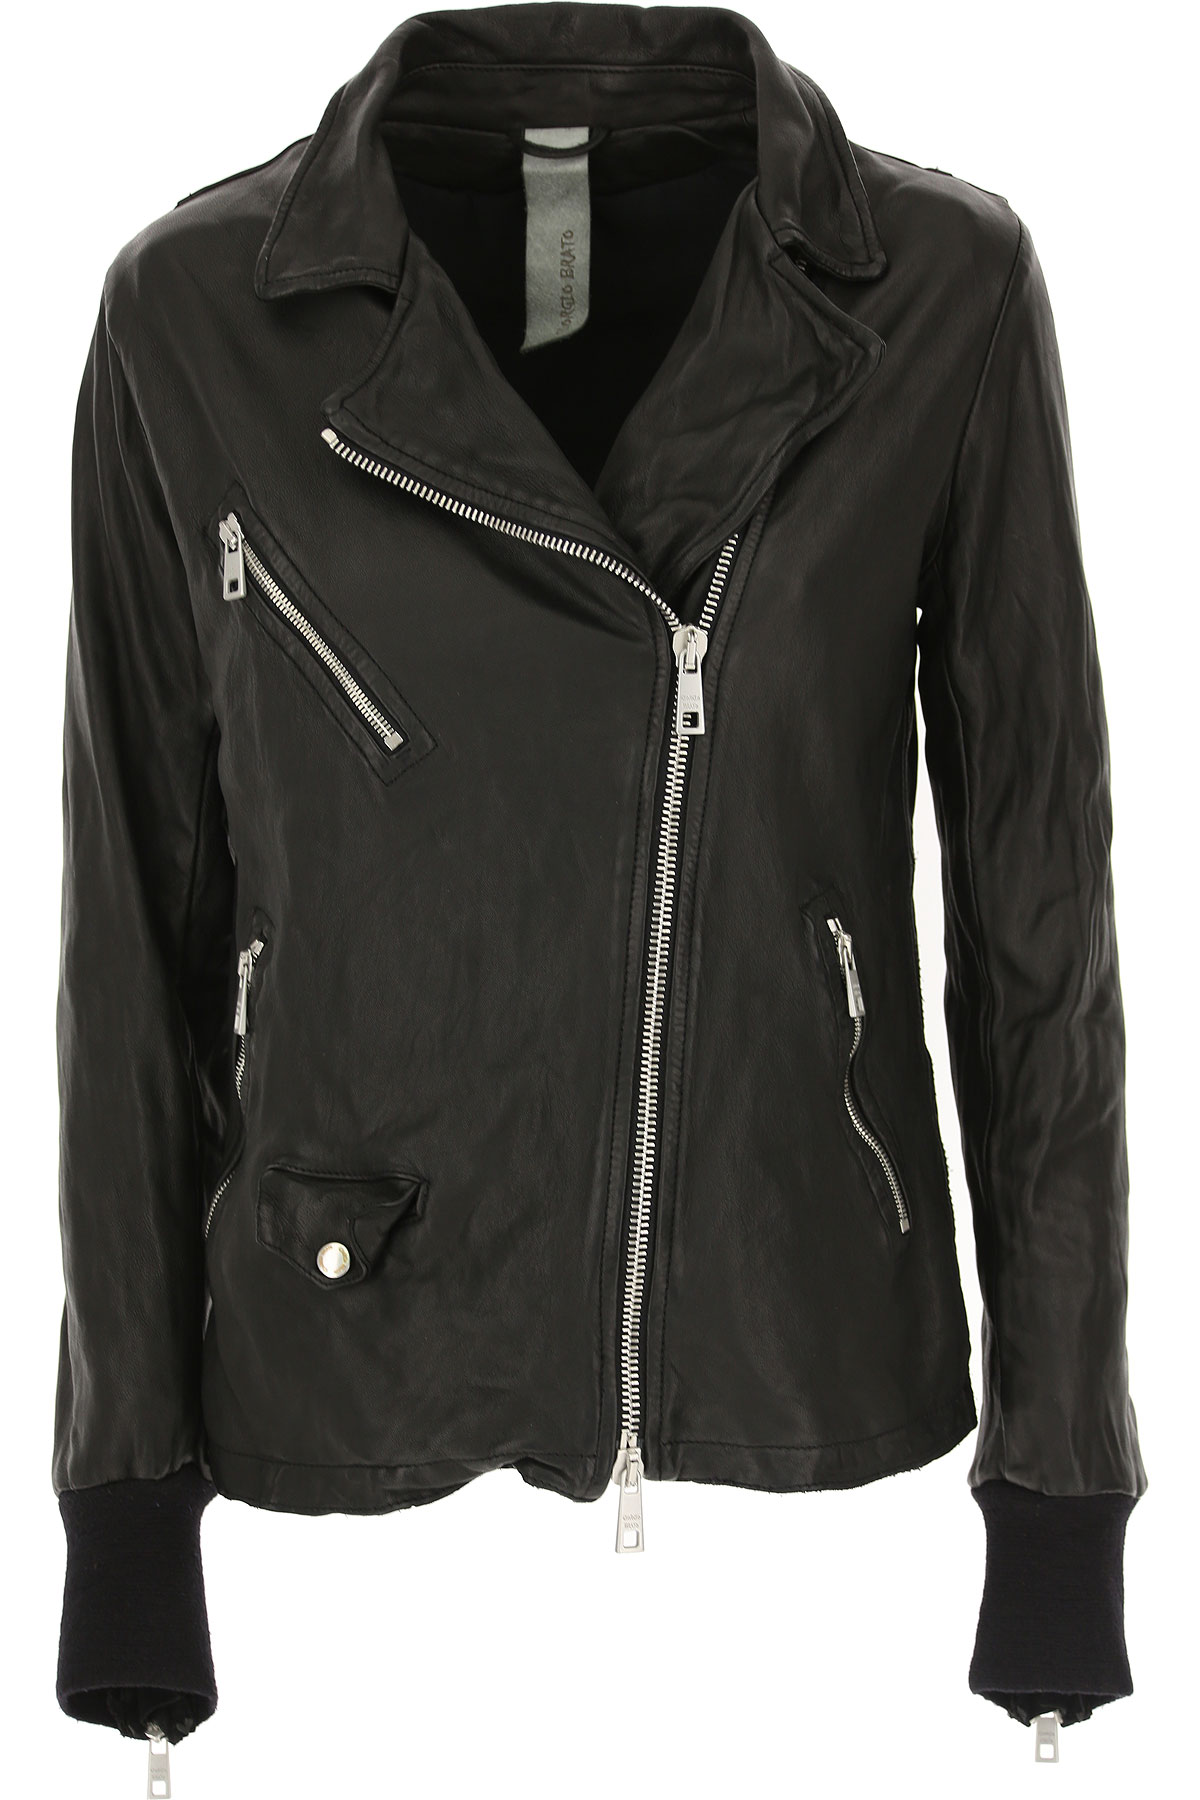 Image of WLG by Giorgio Brato Leather Jacket for Women, Black, Leather, 2017, 10 4 6 8